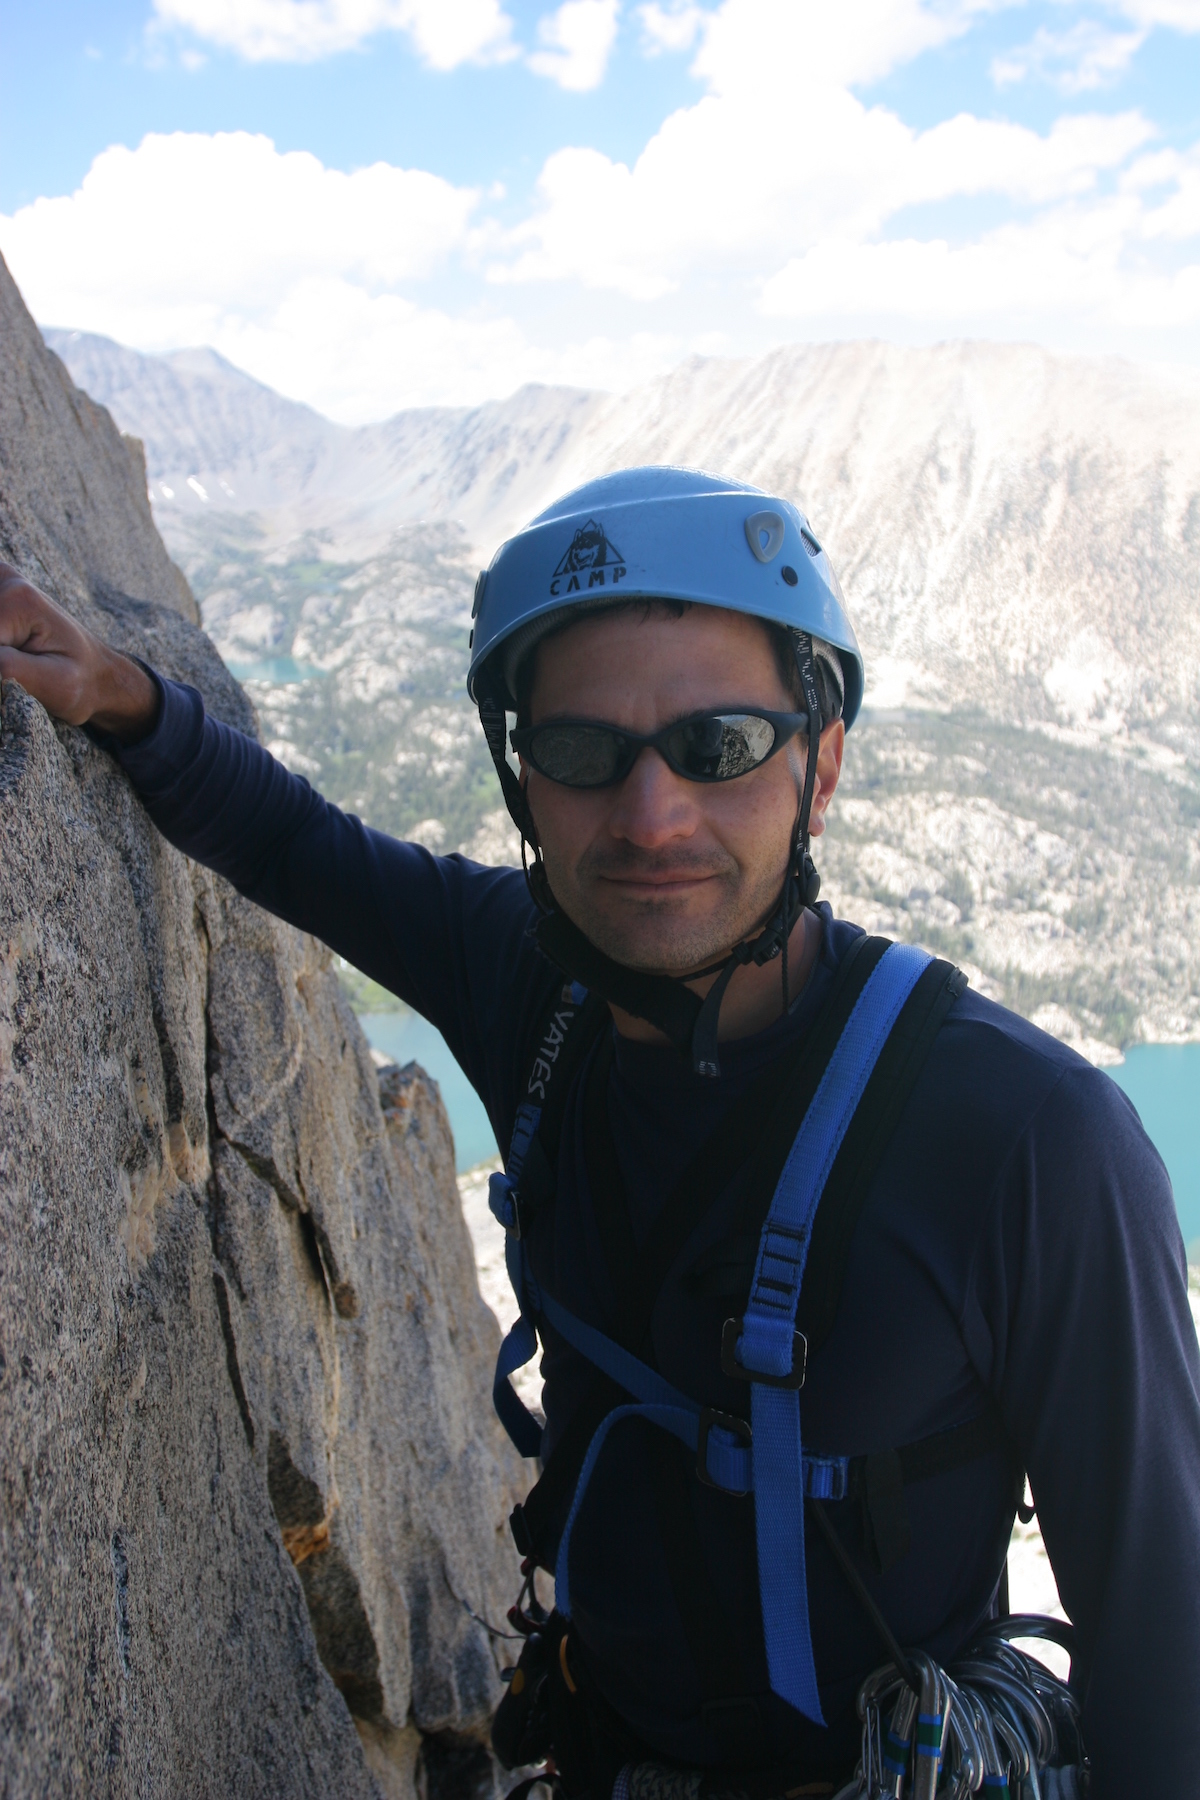 Michael Ybarra climbed extensively in the Sierra Nevada. In June 2012 he passed away during a solo traverse of the Sawtooth Ridge near Bridgeport, Cailfornia. A longtime journalist, he reported on outdoor adventure for The Wall Street Journal, among other publications. For a few of his own stories, see Alpinist 36, 40 and 43. [Photo] Misha Logvinov